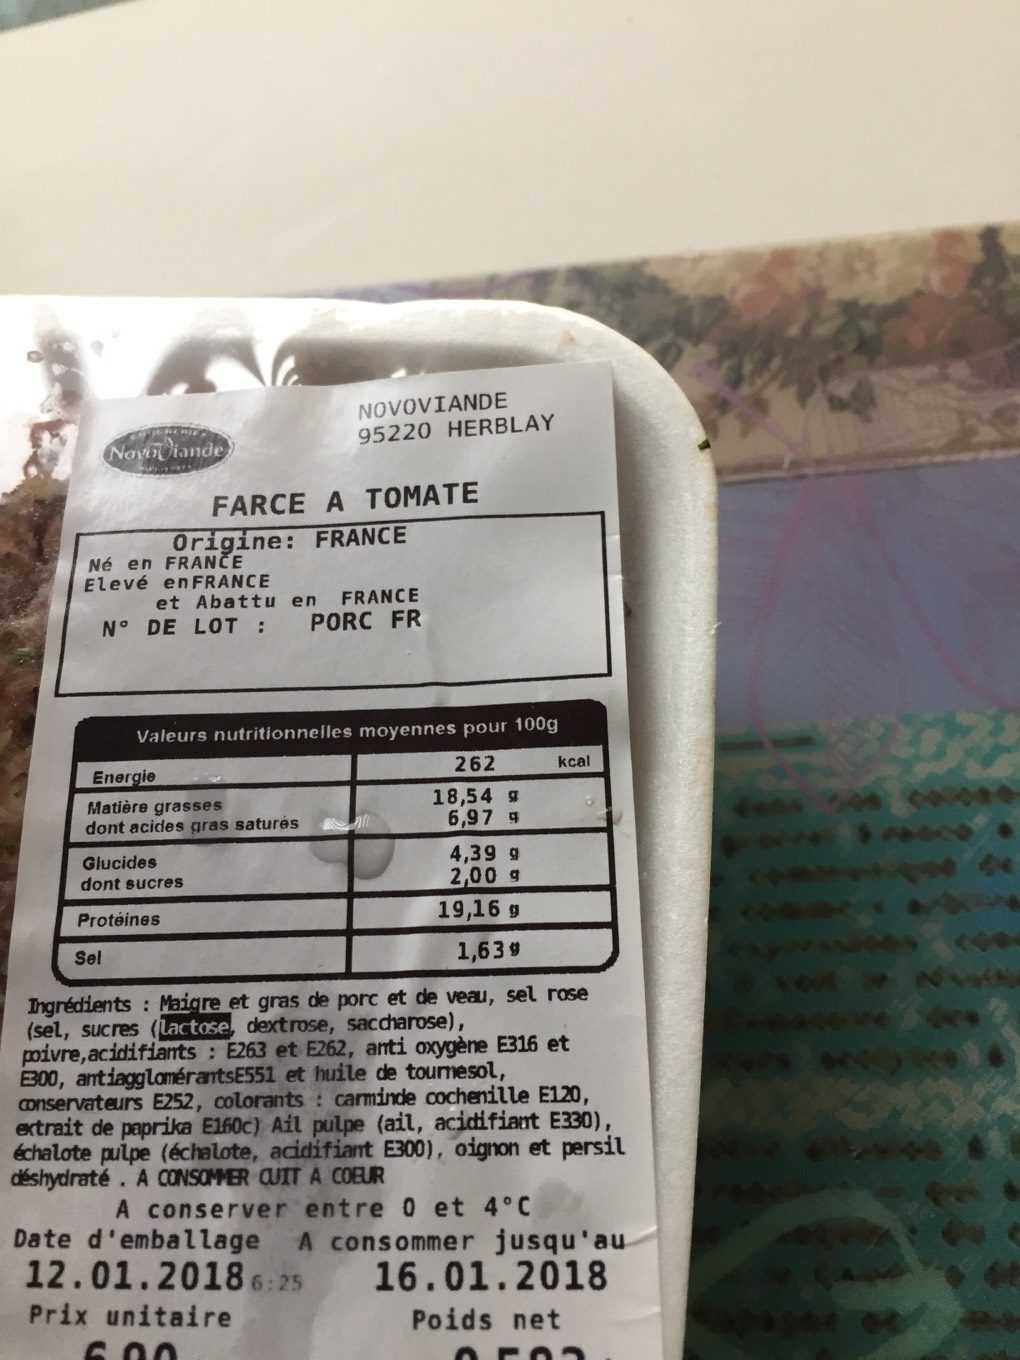 Farce a tomate - Informations nutritionnelles - fr